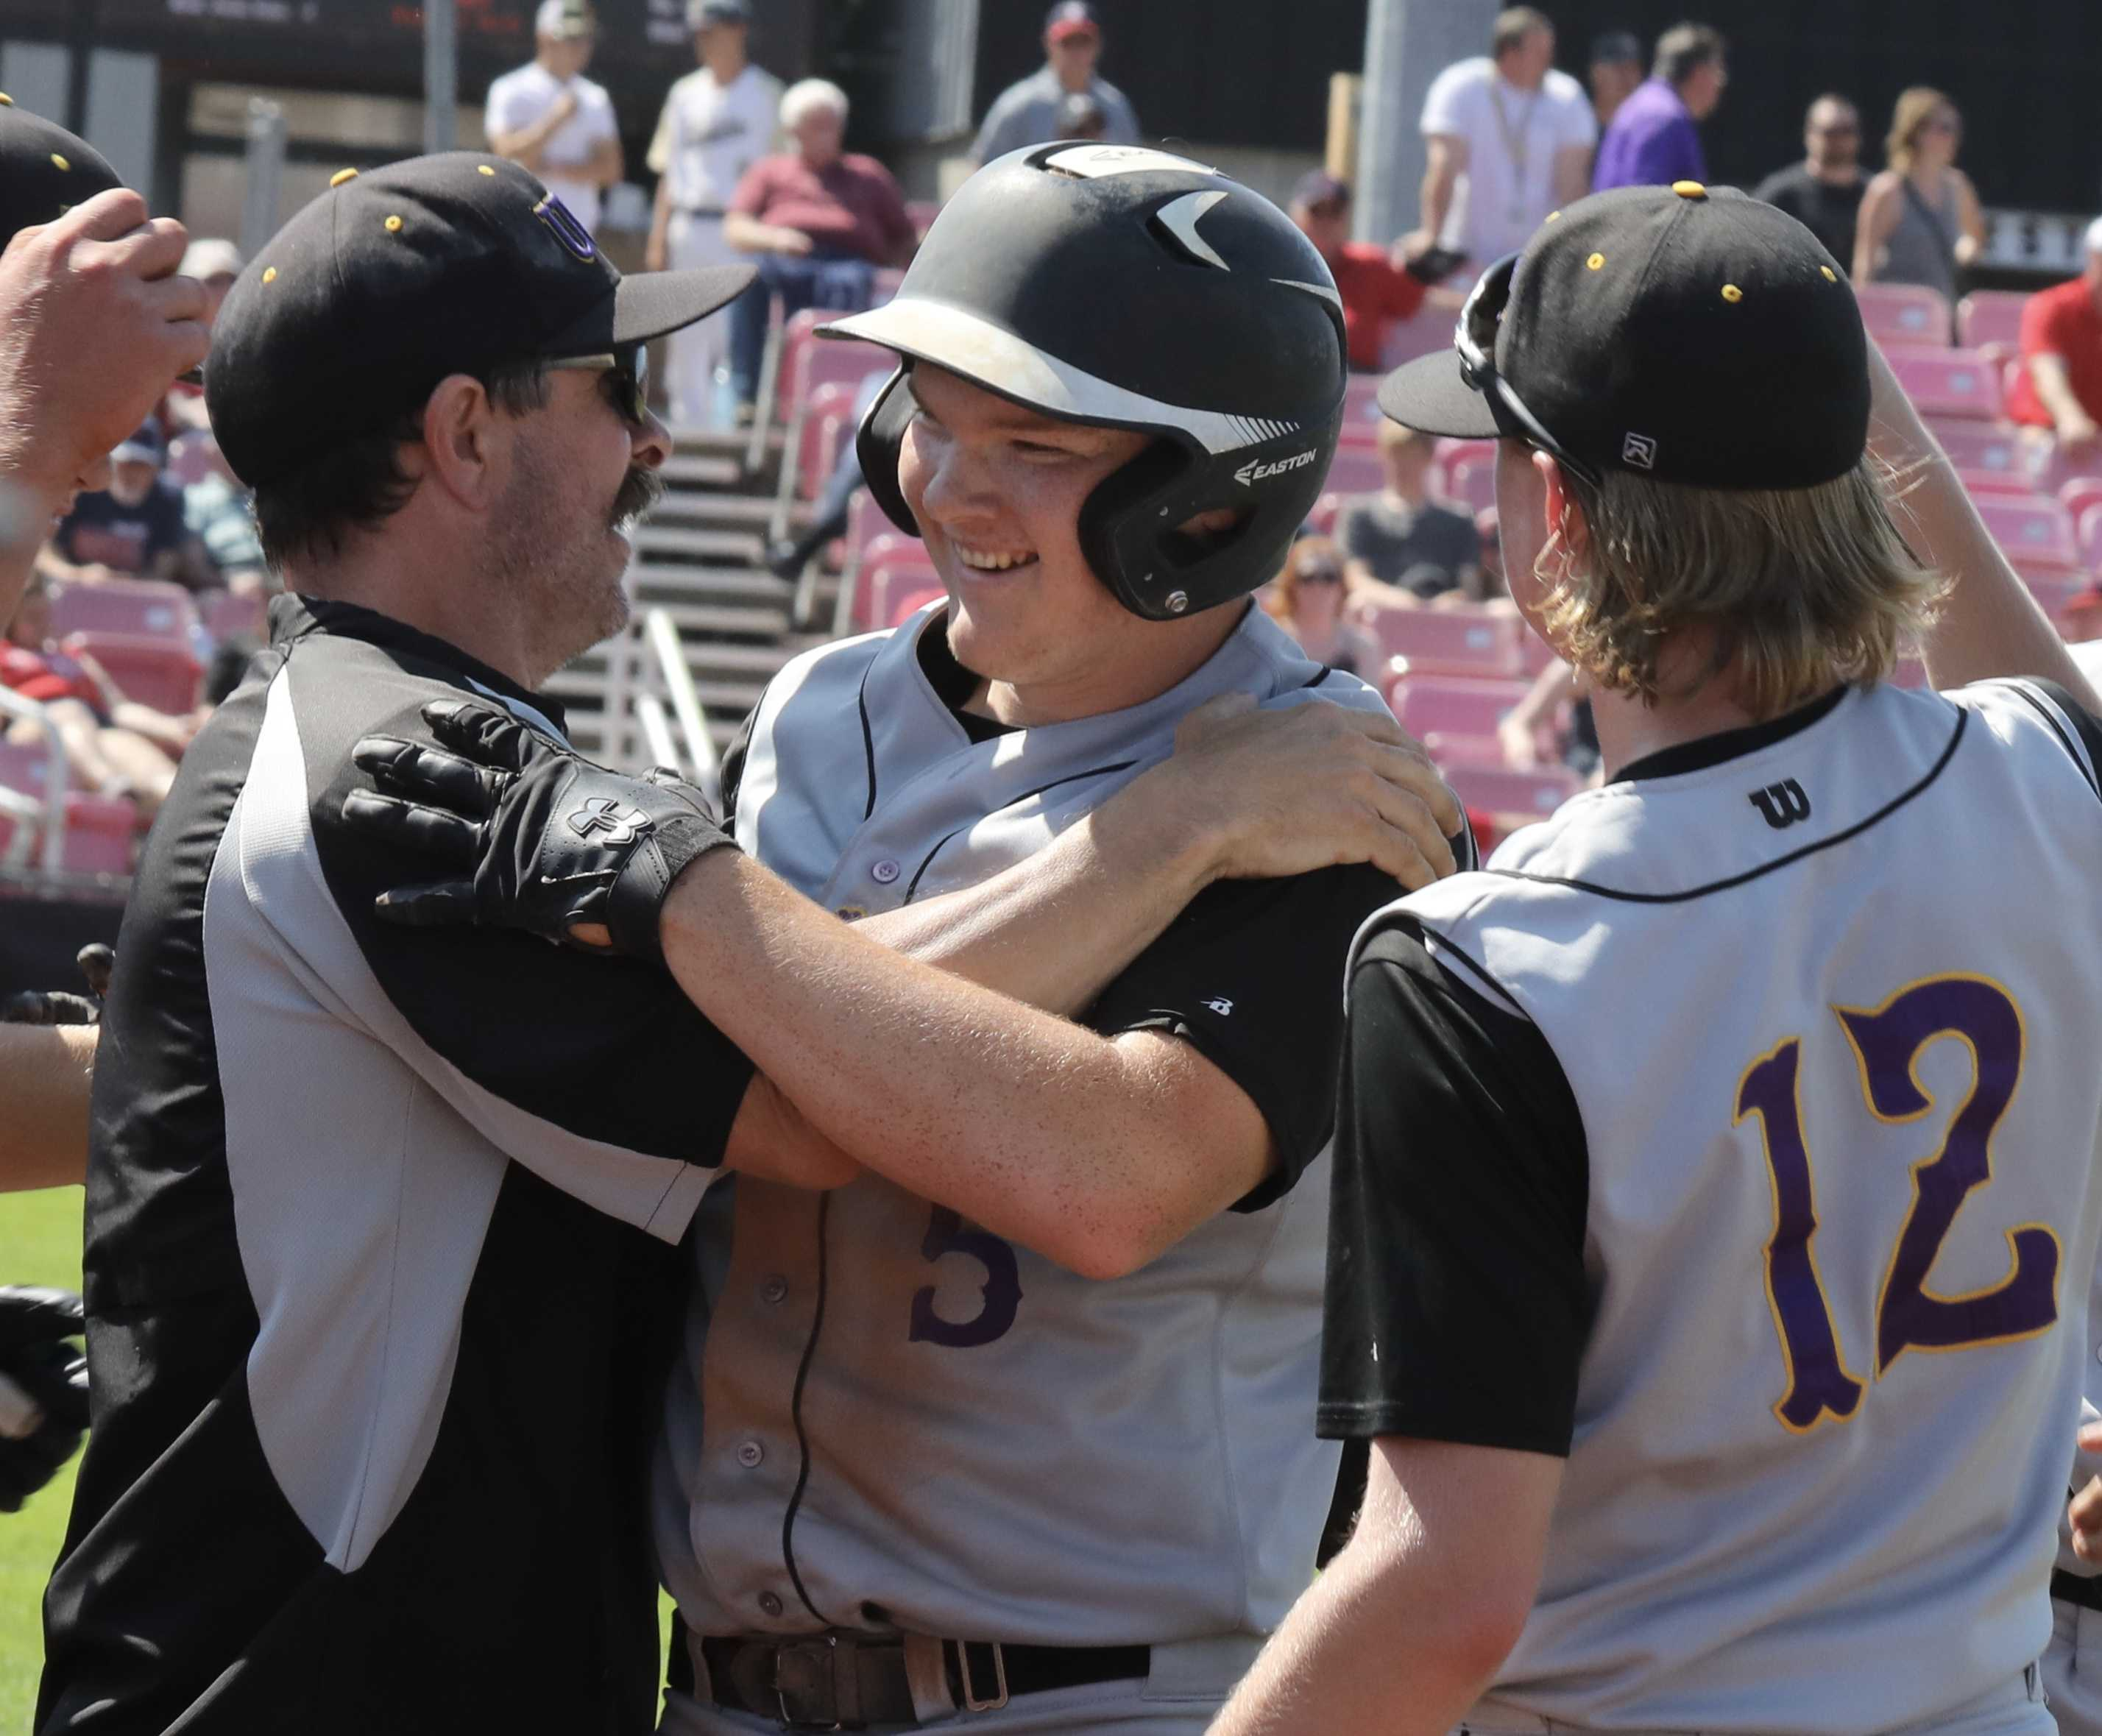 Umpqua Valley Christian's Isaiah Heard gets the cheers of a Monarch coach and teammate Jacob Luther after key two-run double